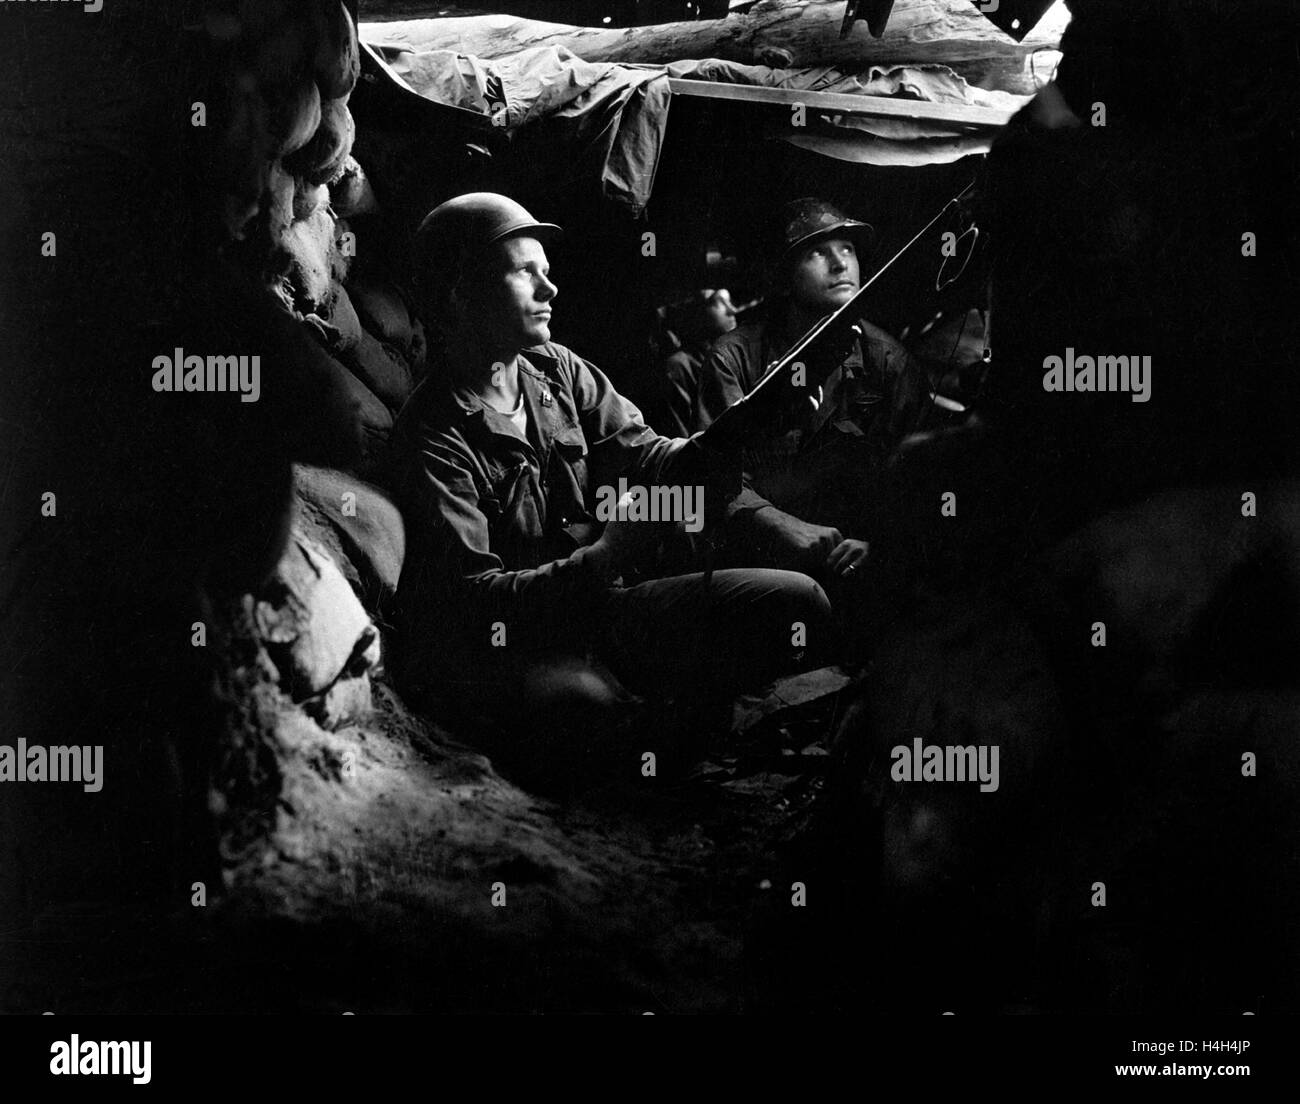 U.S. Army infantrymen with the 27th Infantry Regiment take cover in tunnels on the frontline during the battle of - Stock Image